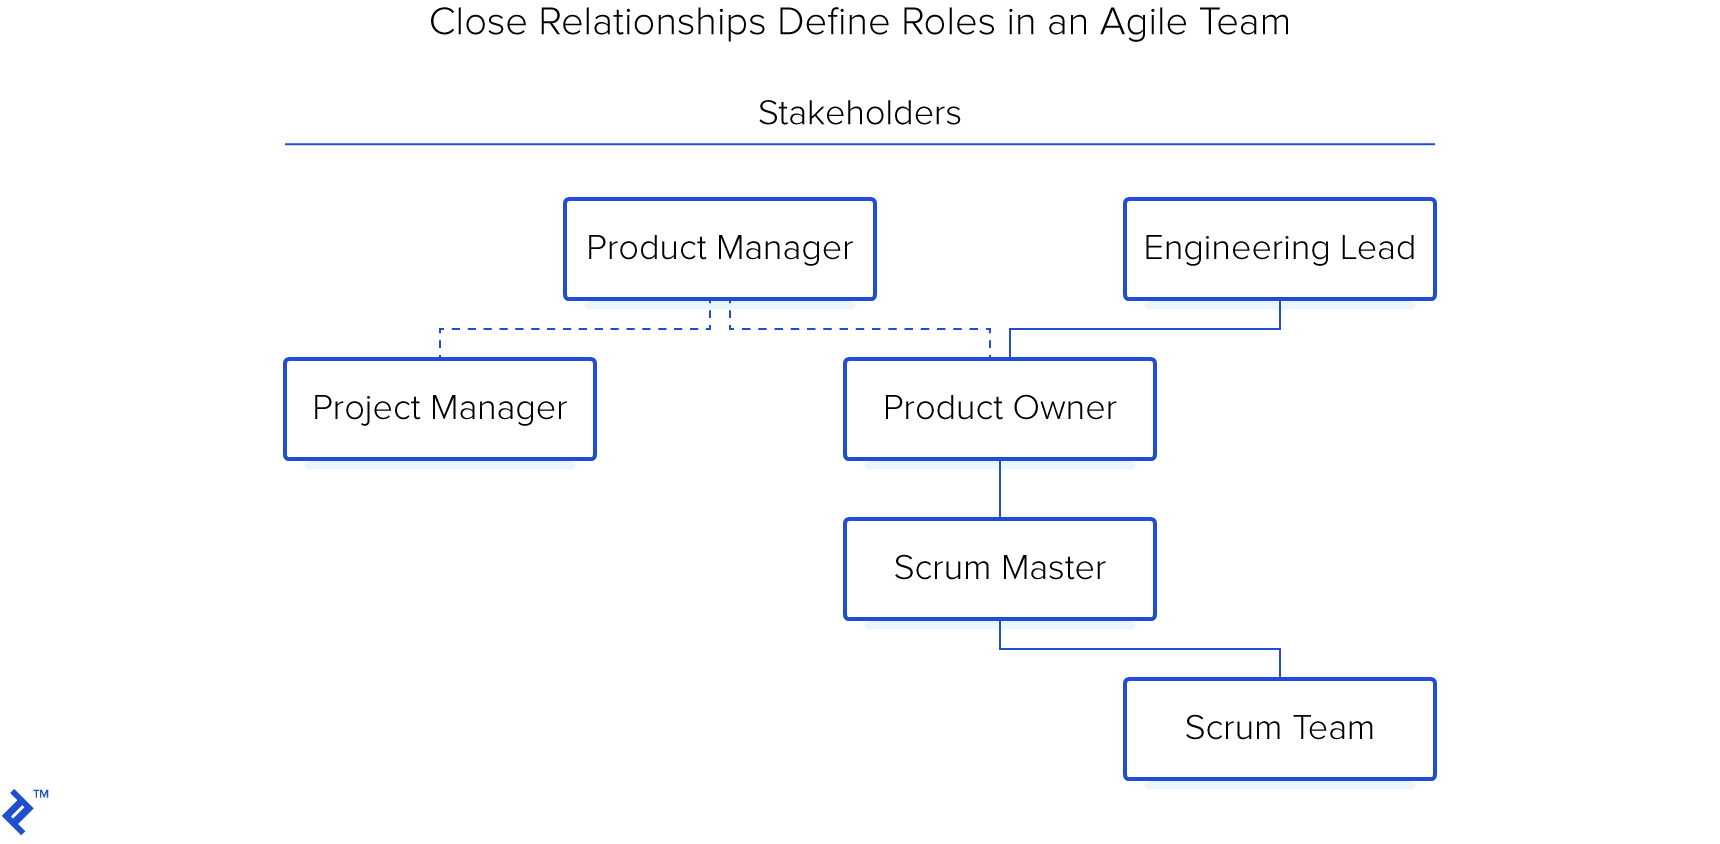 Close relationships define roles in an agile team.